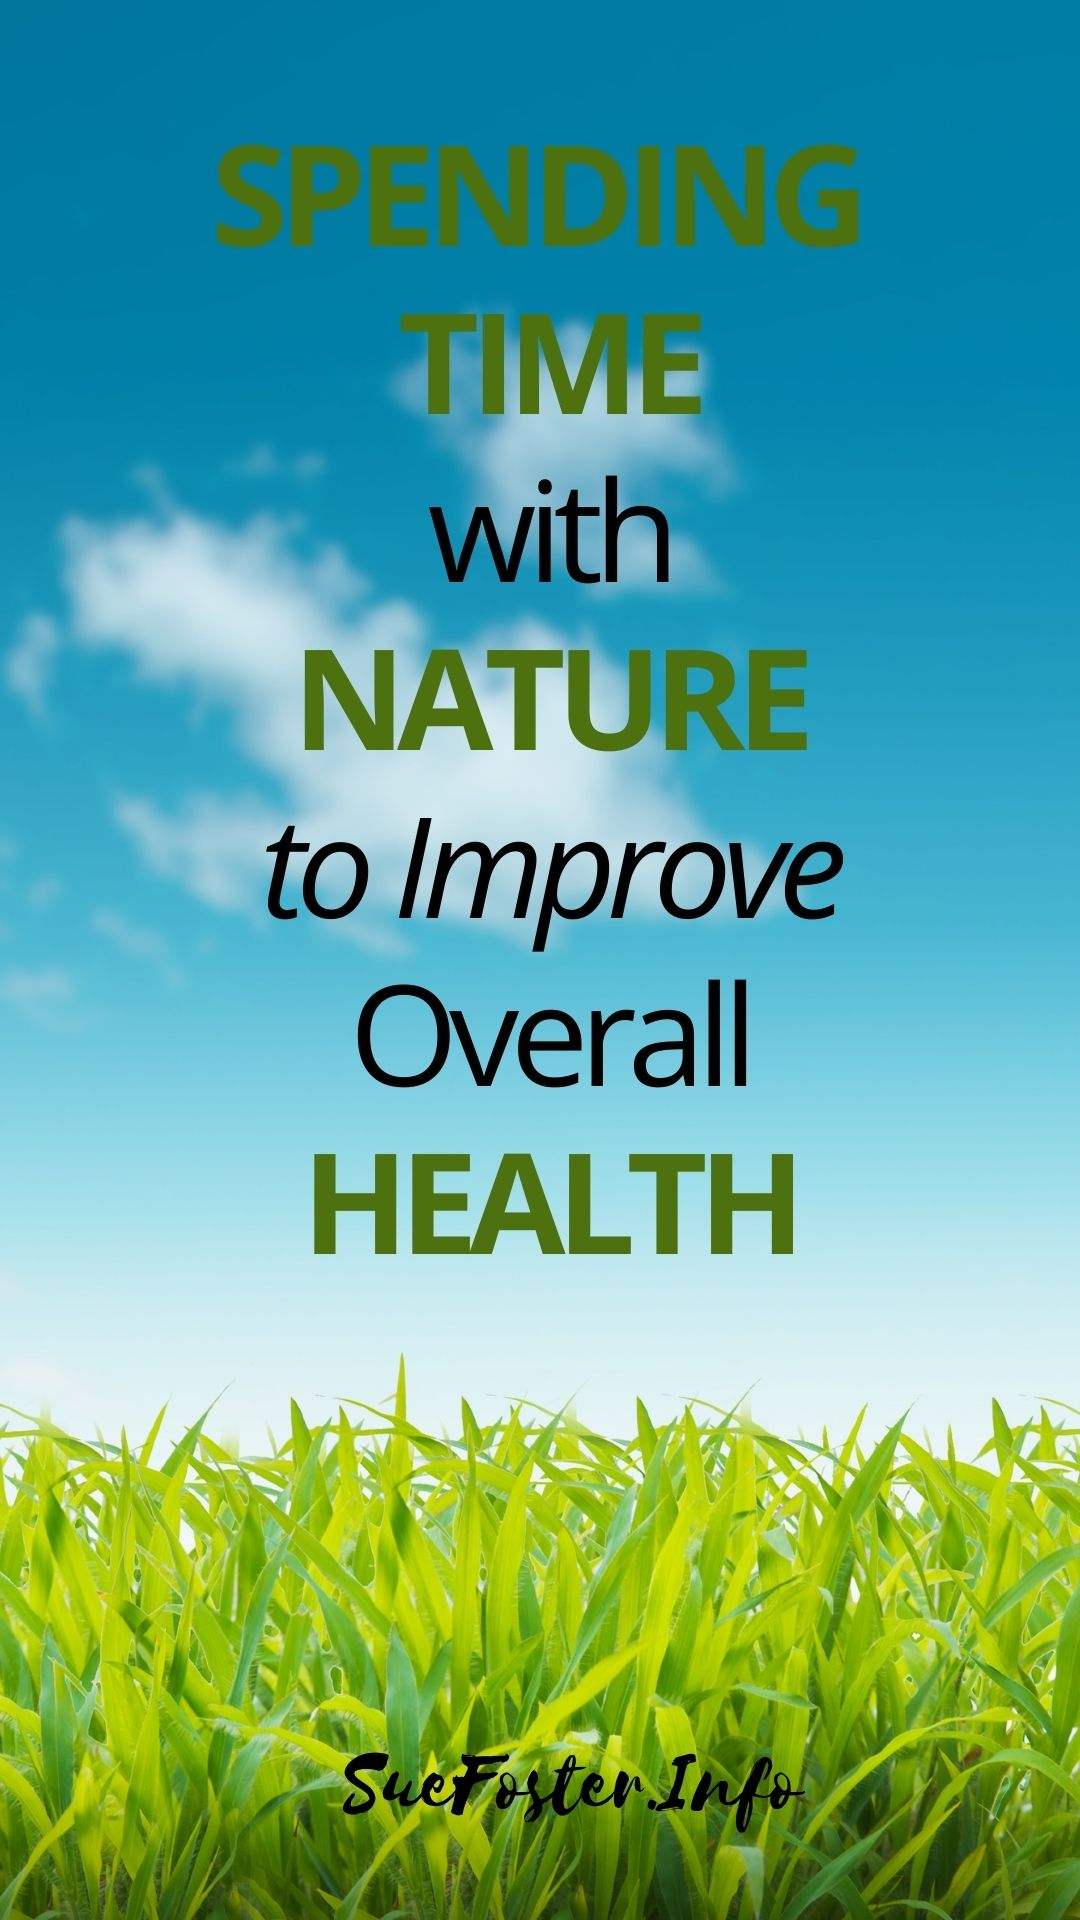 Raising your quality of life may be challenging if you ignore your health. Change your habits and spend time with nature to improve your lifestyle.